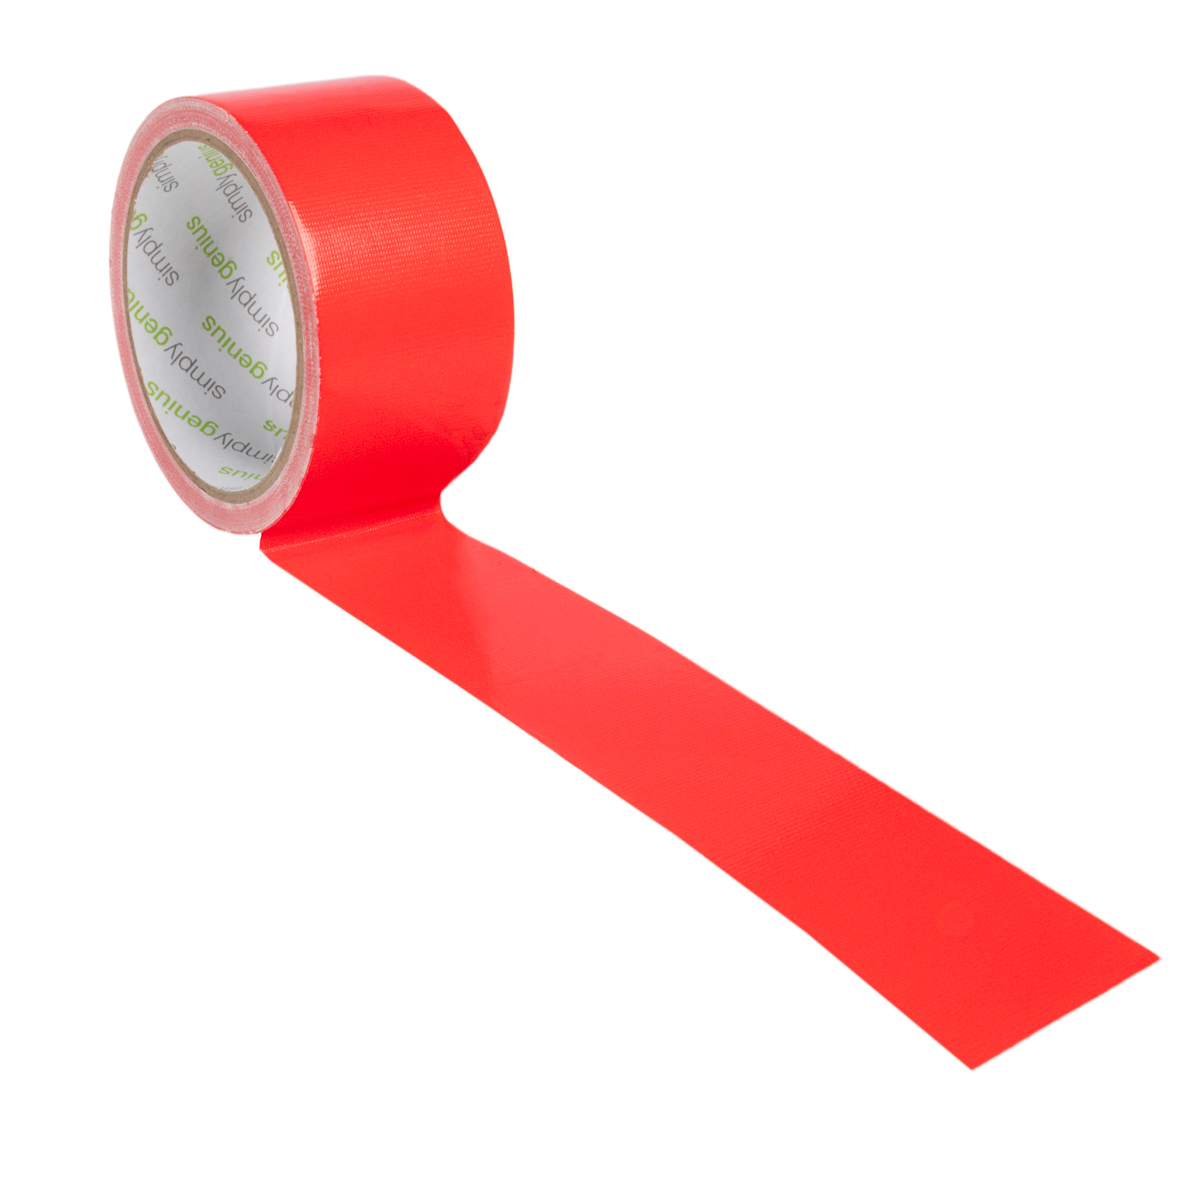 Simply-Genius-Duct-Tape-Roll-Colors-Patterns-Craft-Supplies-Colored-amp-Patterned thumbnail 191